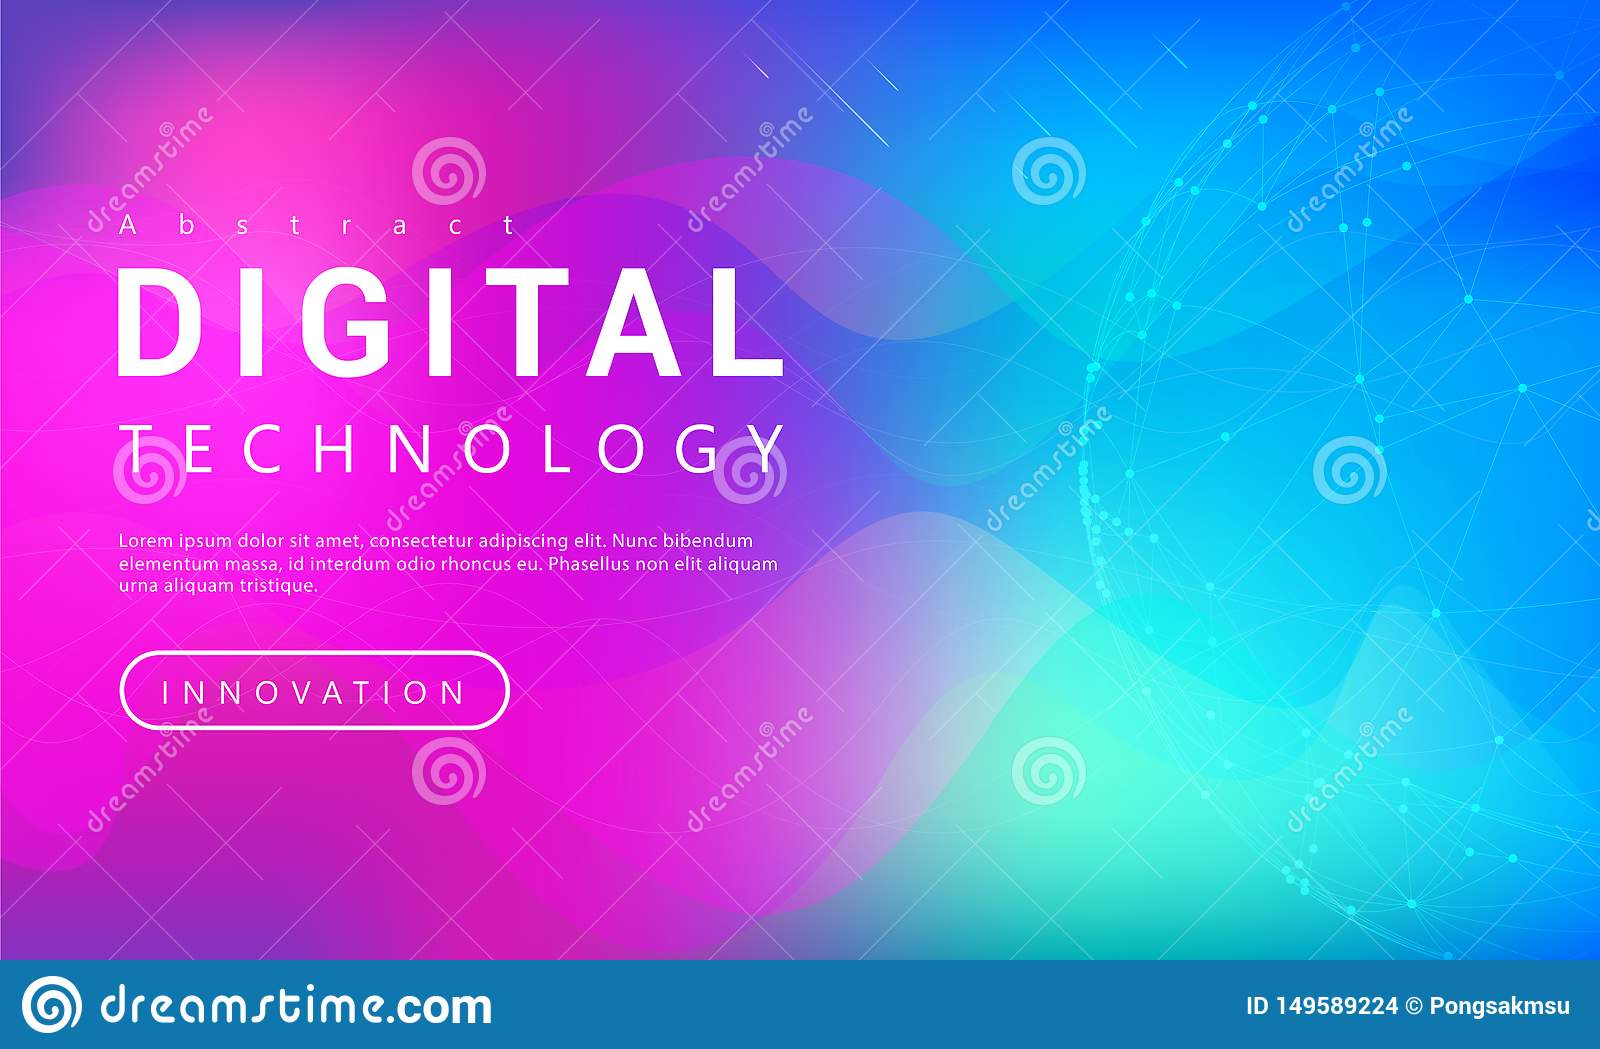 Digital technology banner purple blue background concept with world line light effects